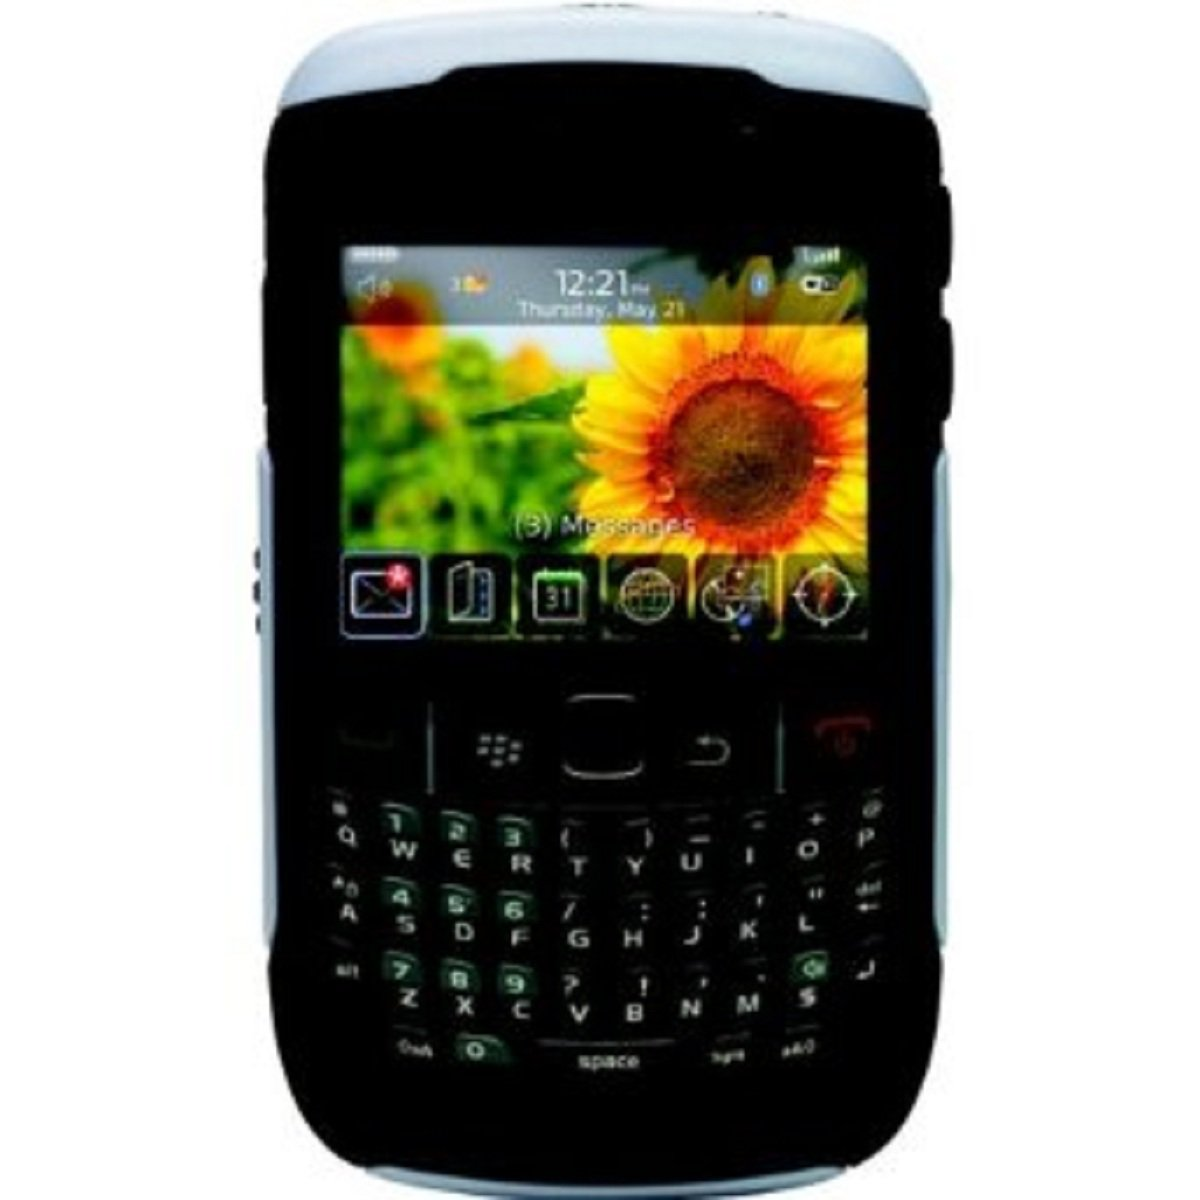 Black Silicone Snap On Cover for Blackberry Curve 8520/8530 Phone New #D81